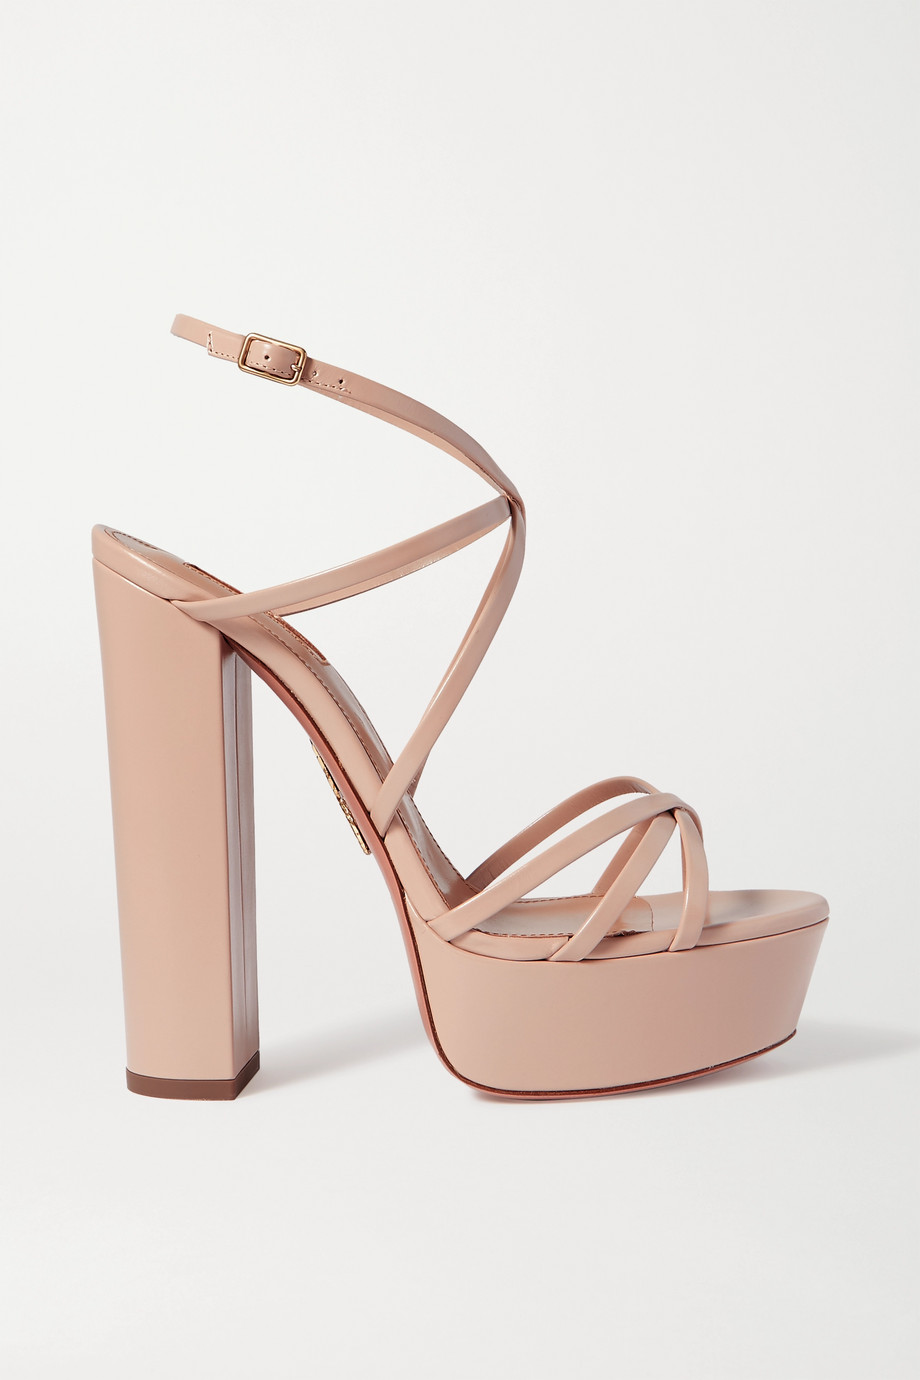 Aquazzura Gin 140 leather platform sandals